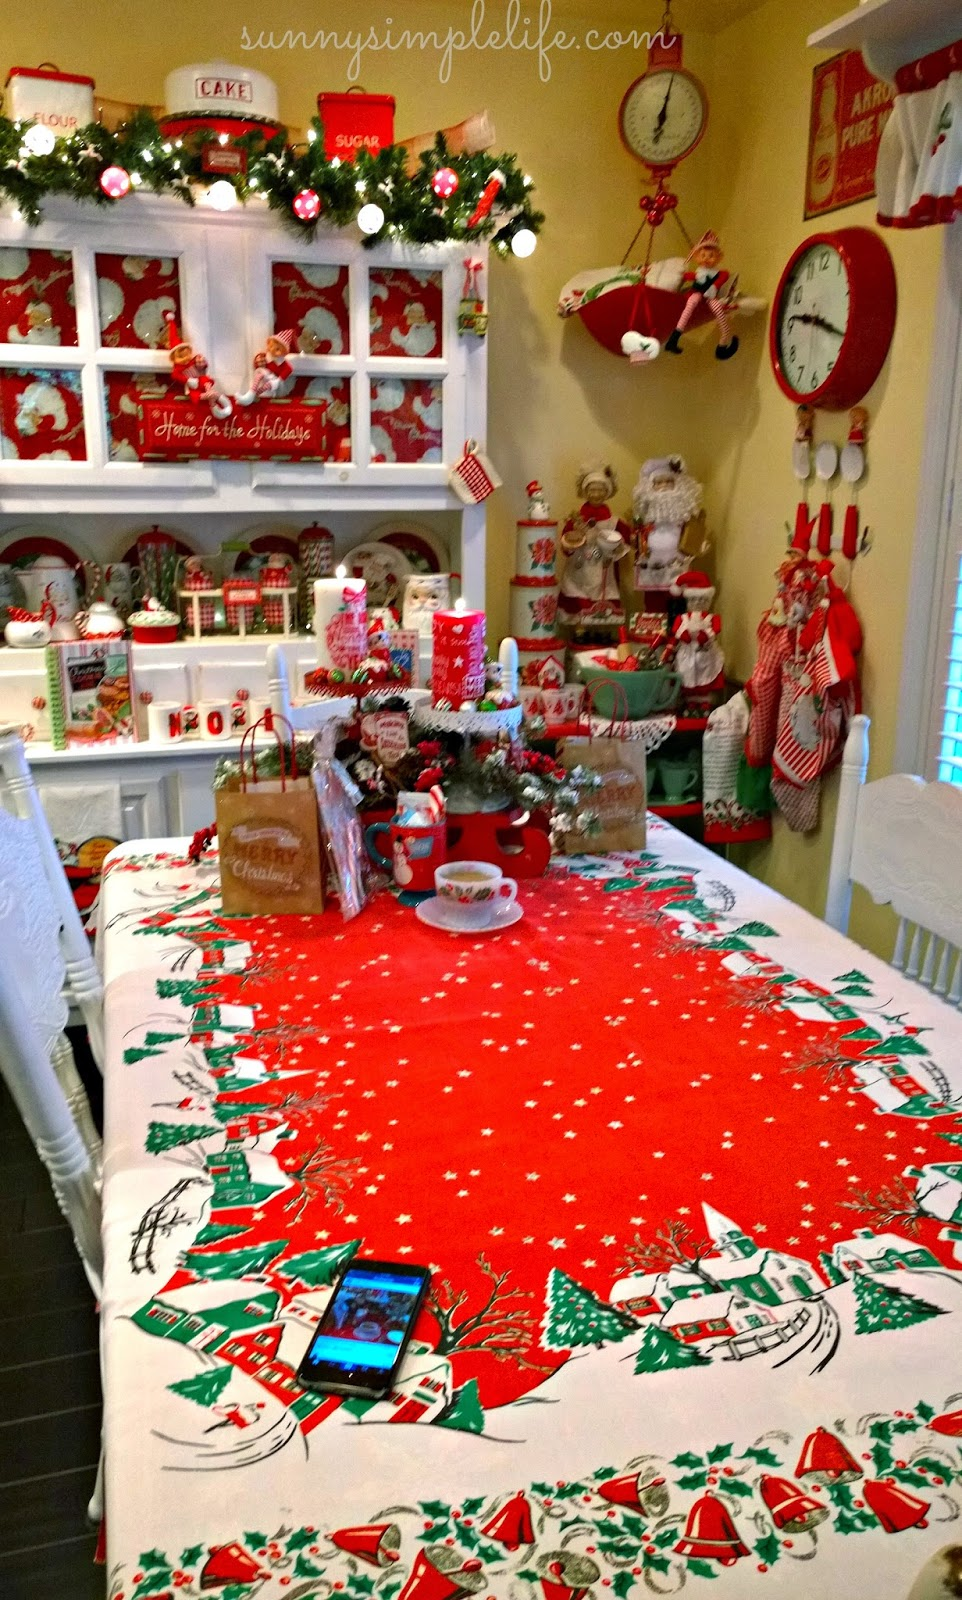 Sunny simple life cozy cottage christmas tour part one for Vintage christmas craft supplies